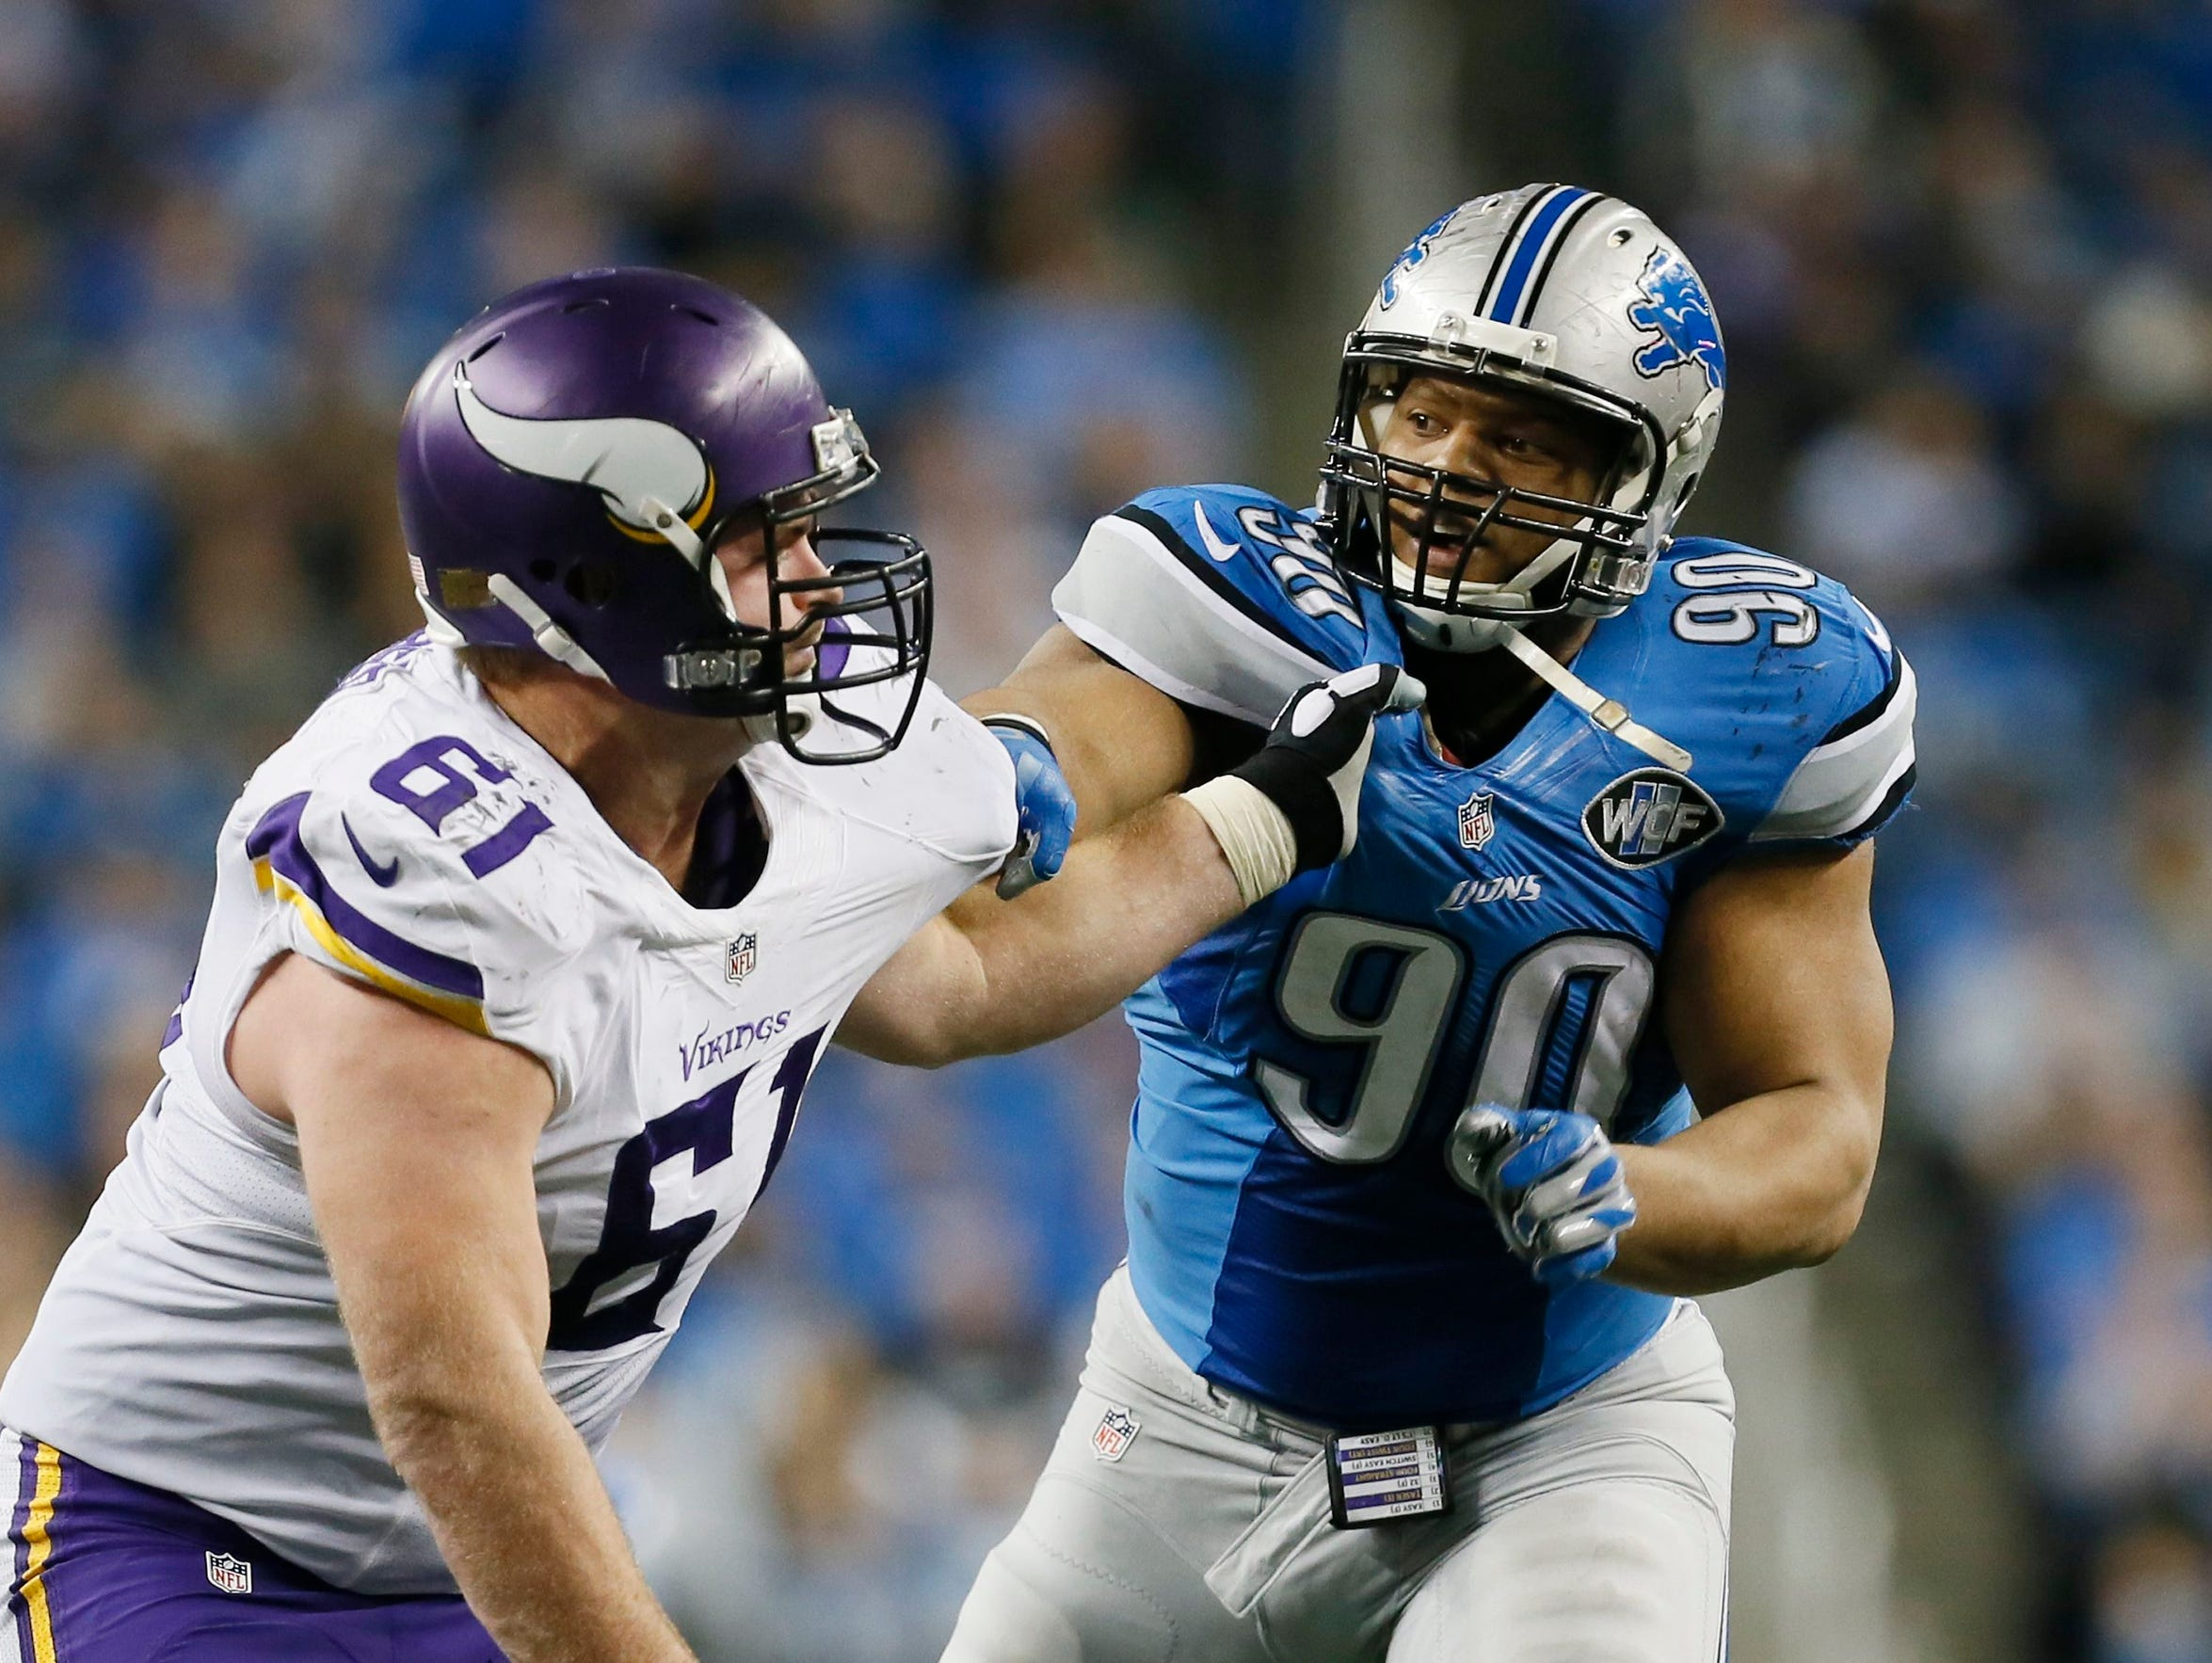 Detroit Lions defensive tackle Ndamukong Suh goes up